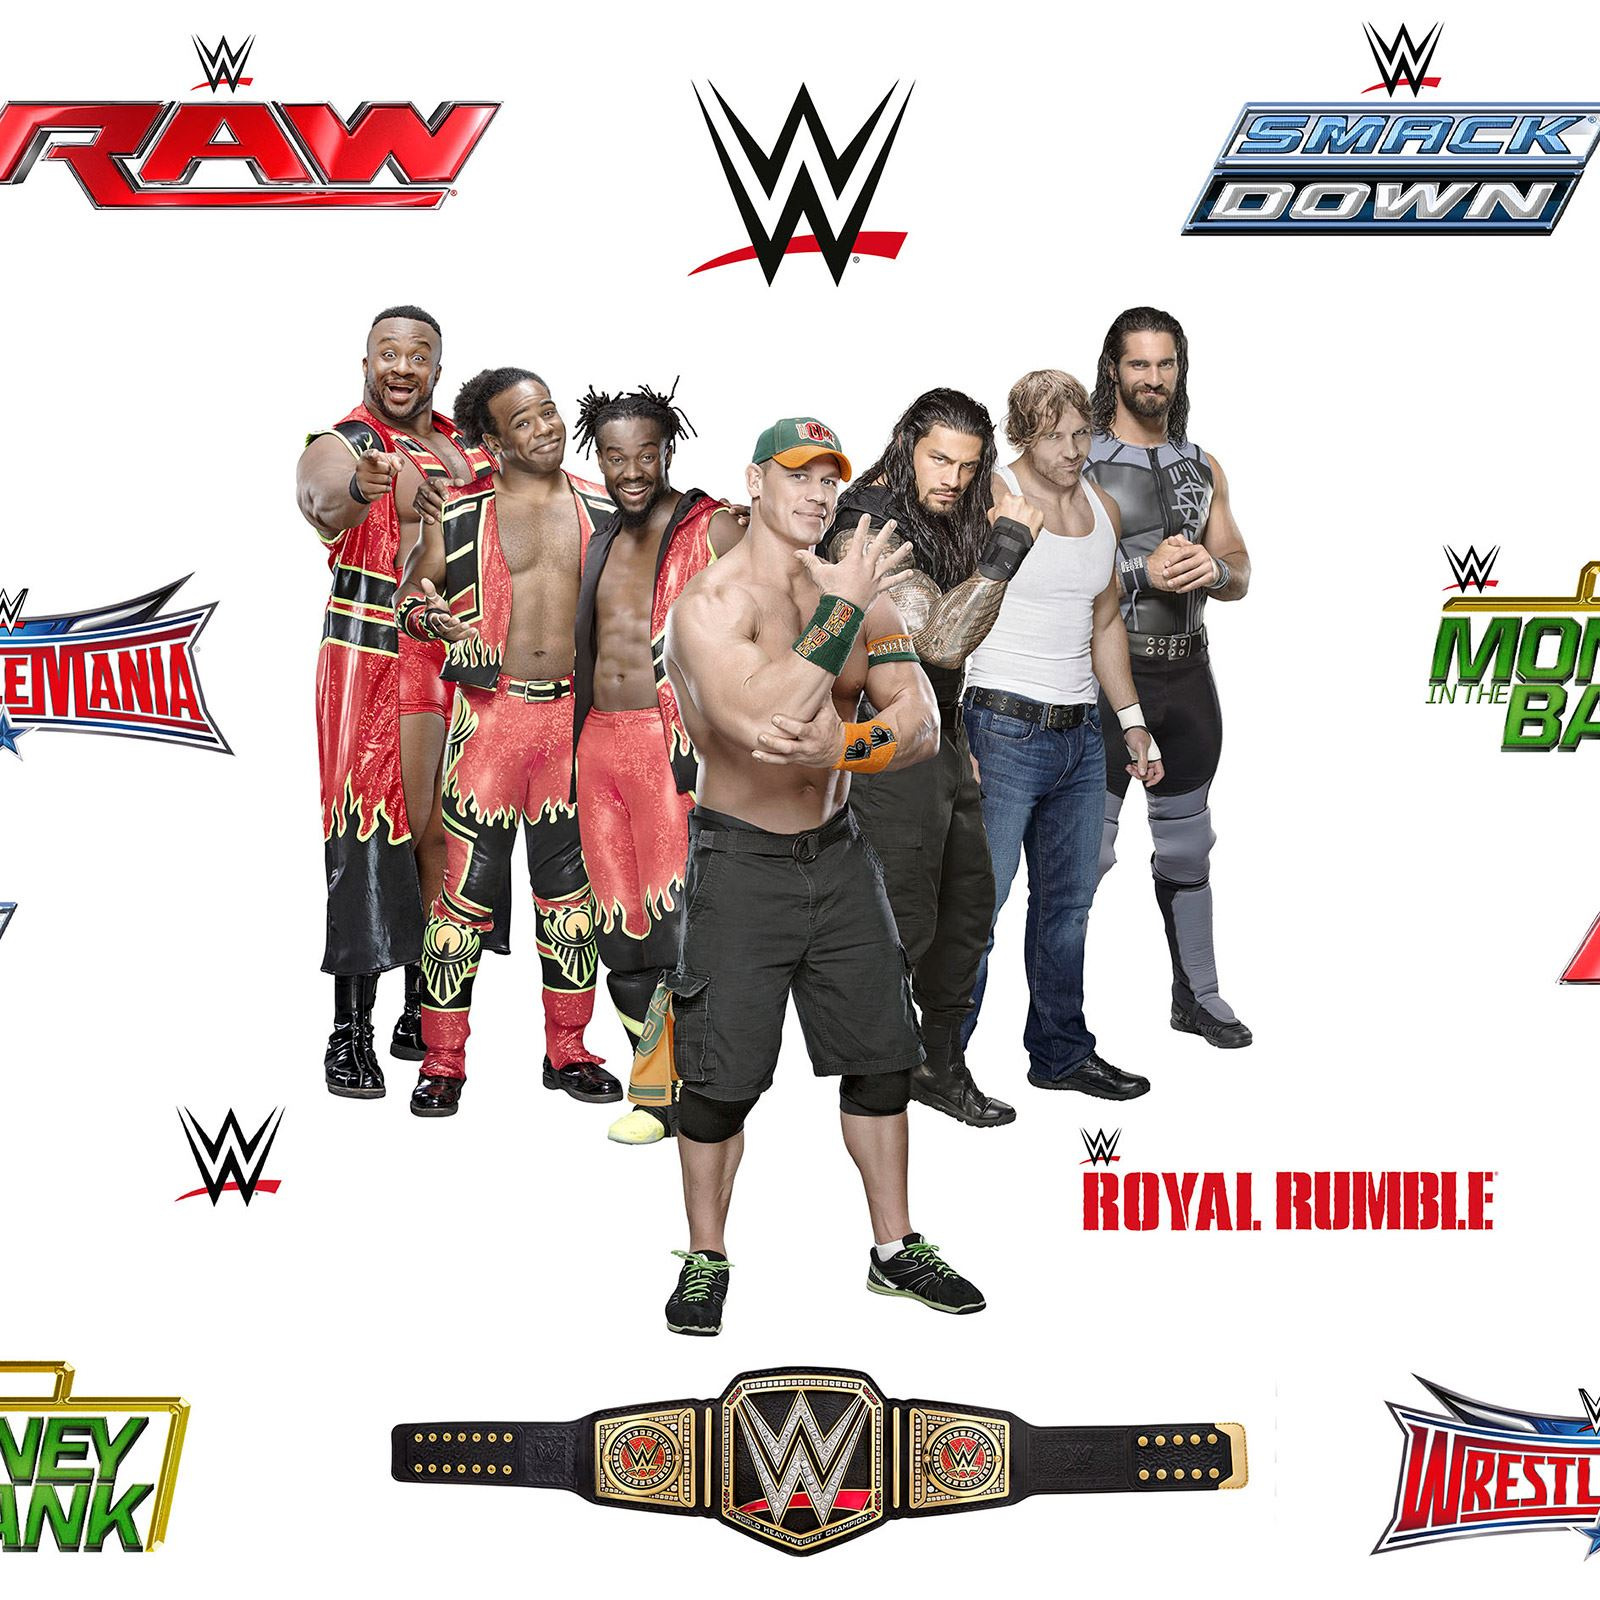 WWE WRESTLING SUPERSTARS WALLPAPER ROLLS NEW